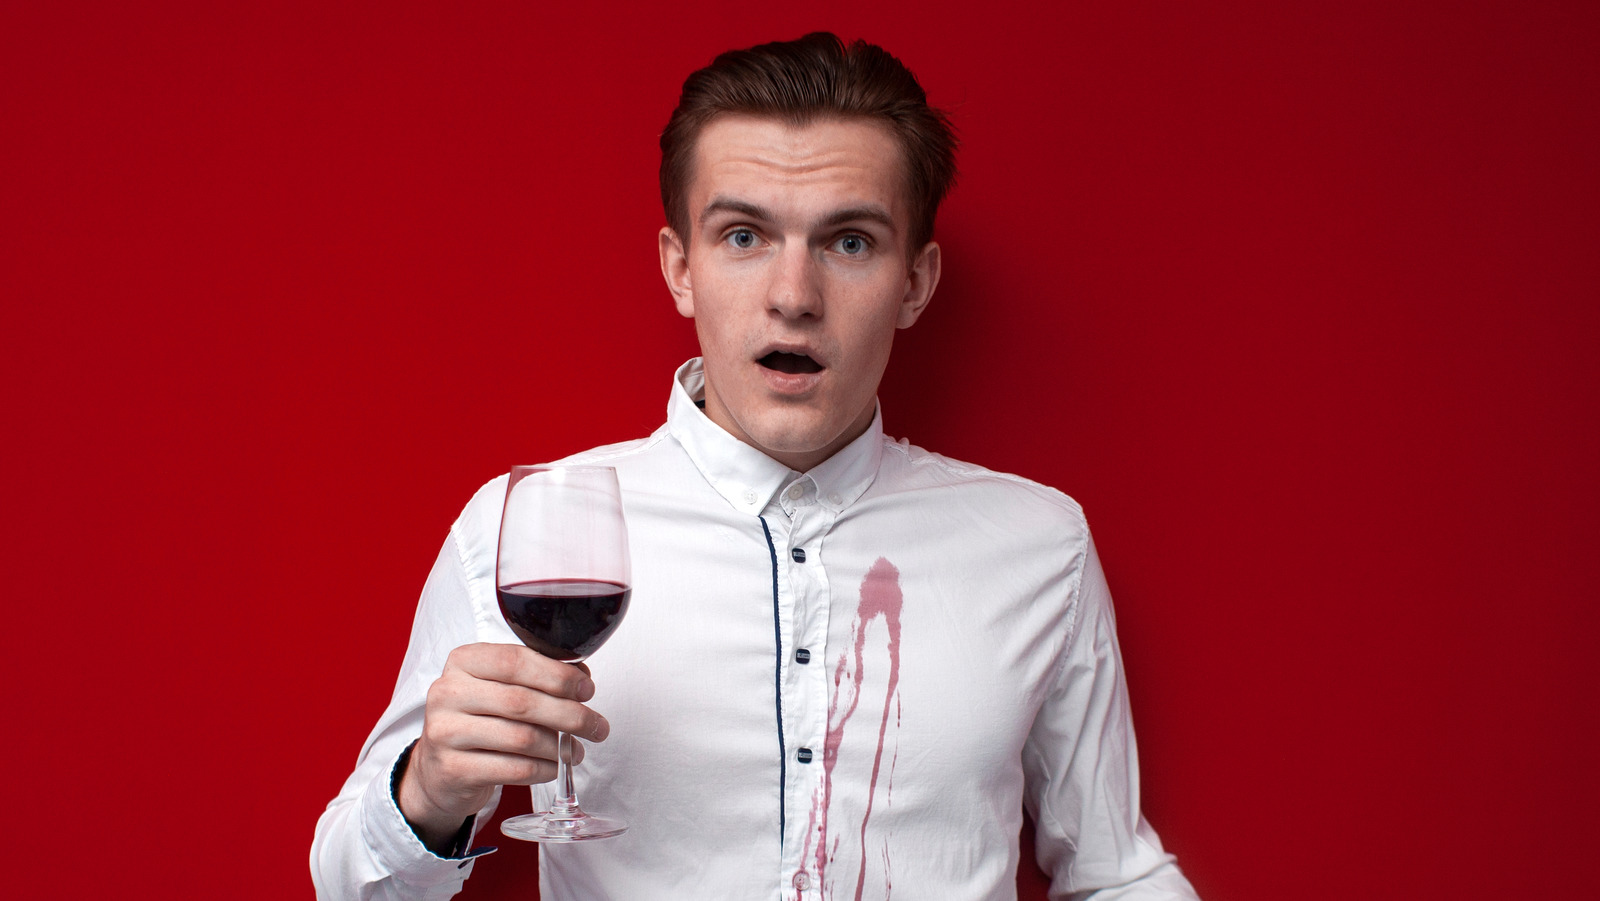 How To Get Red Wine Stains Out Of Clothing